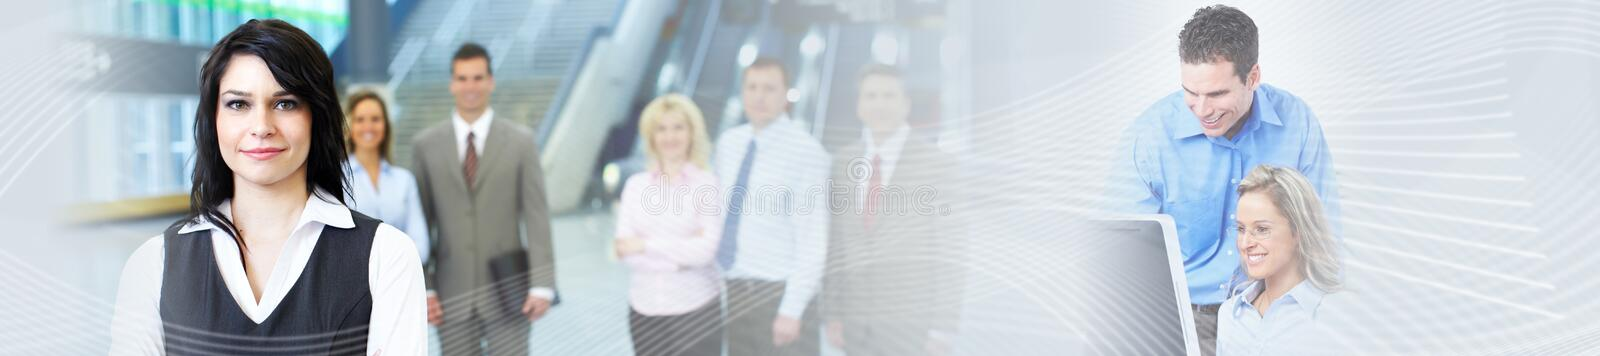 Business background. Business people group over abstract financial background royalty free stock photography